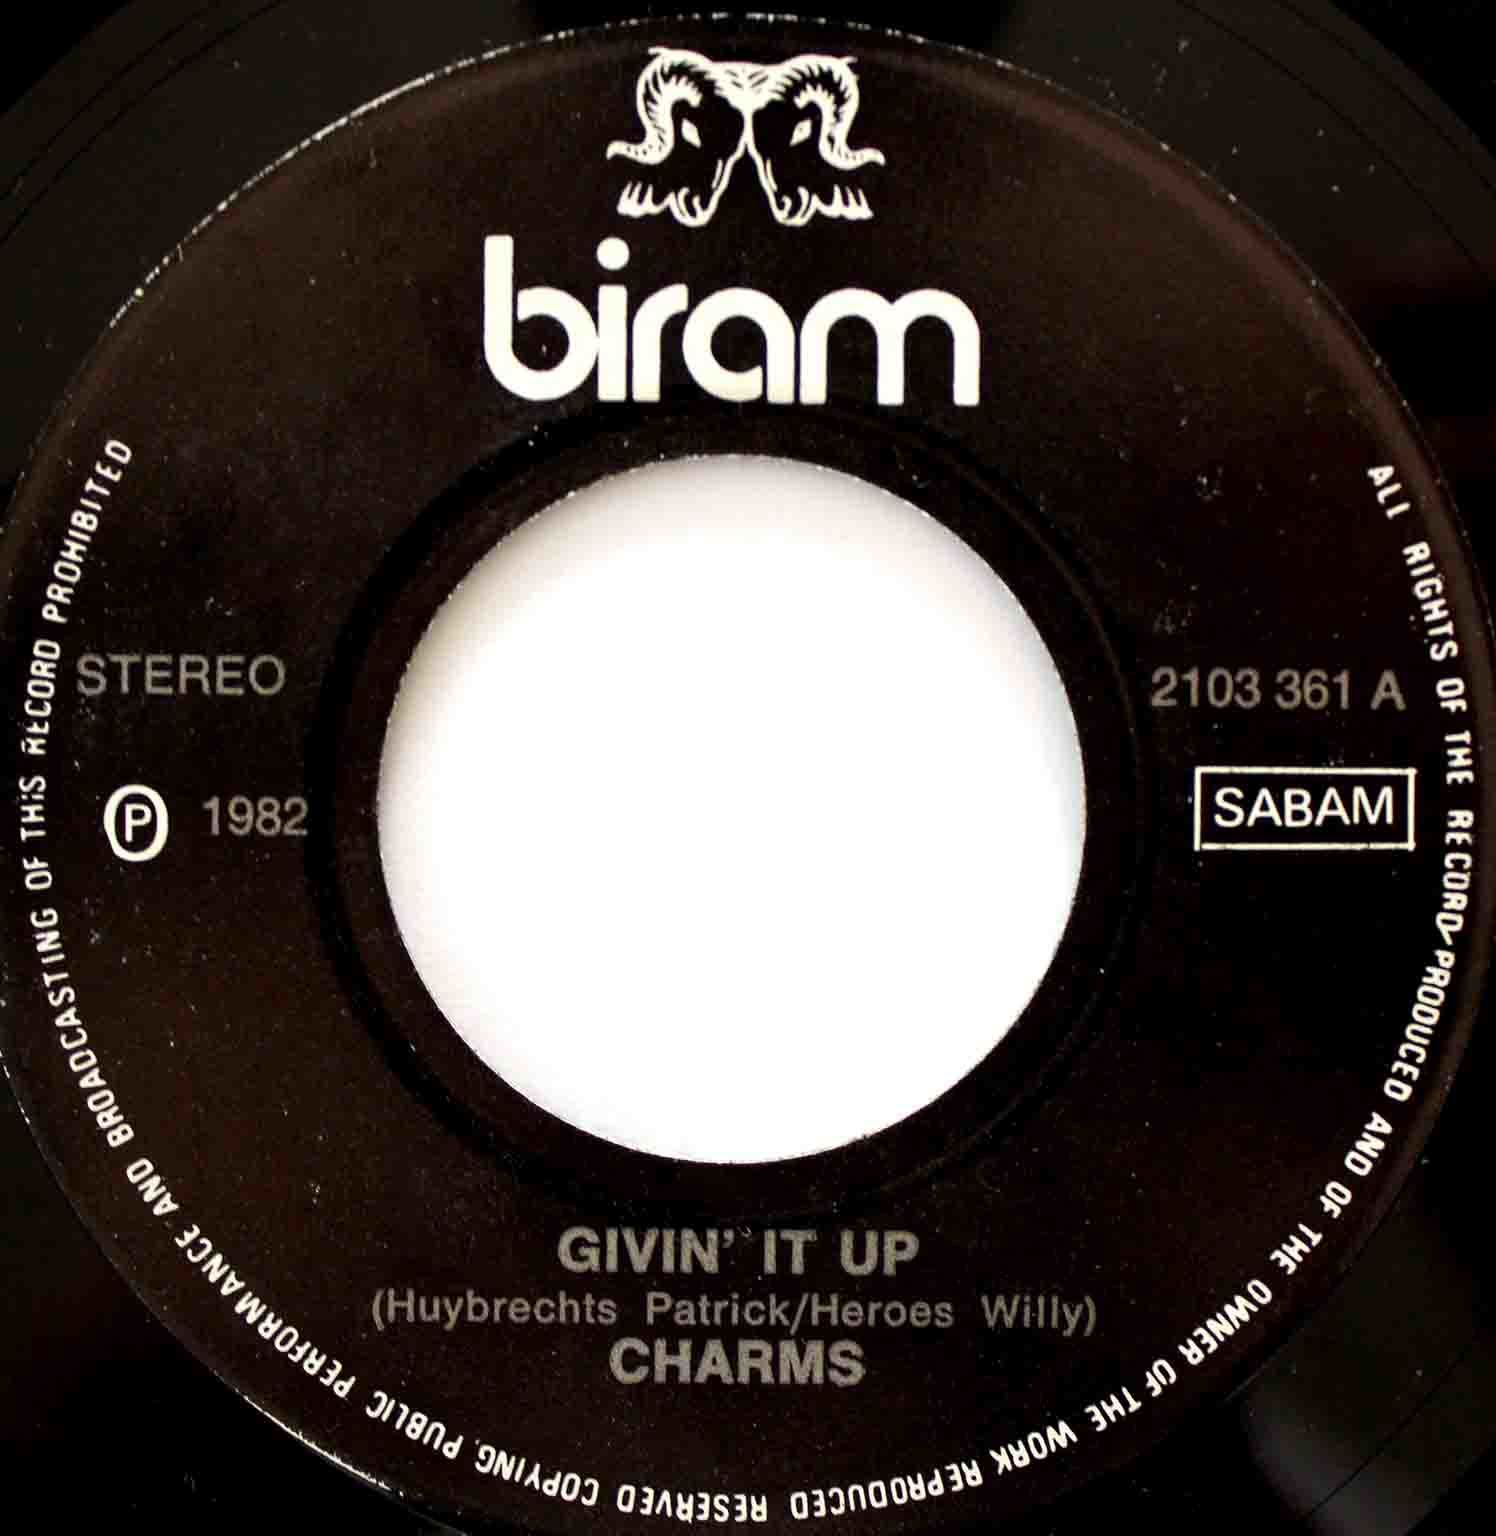 Charms - Givin It Up 05